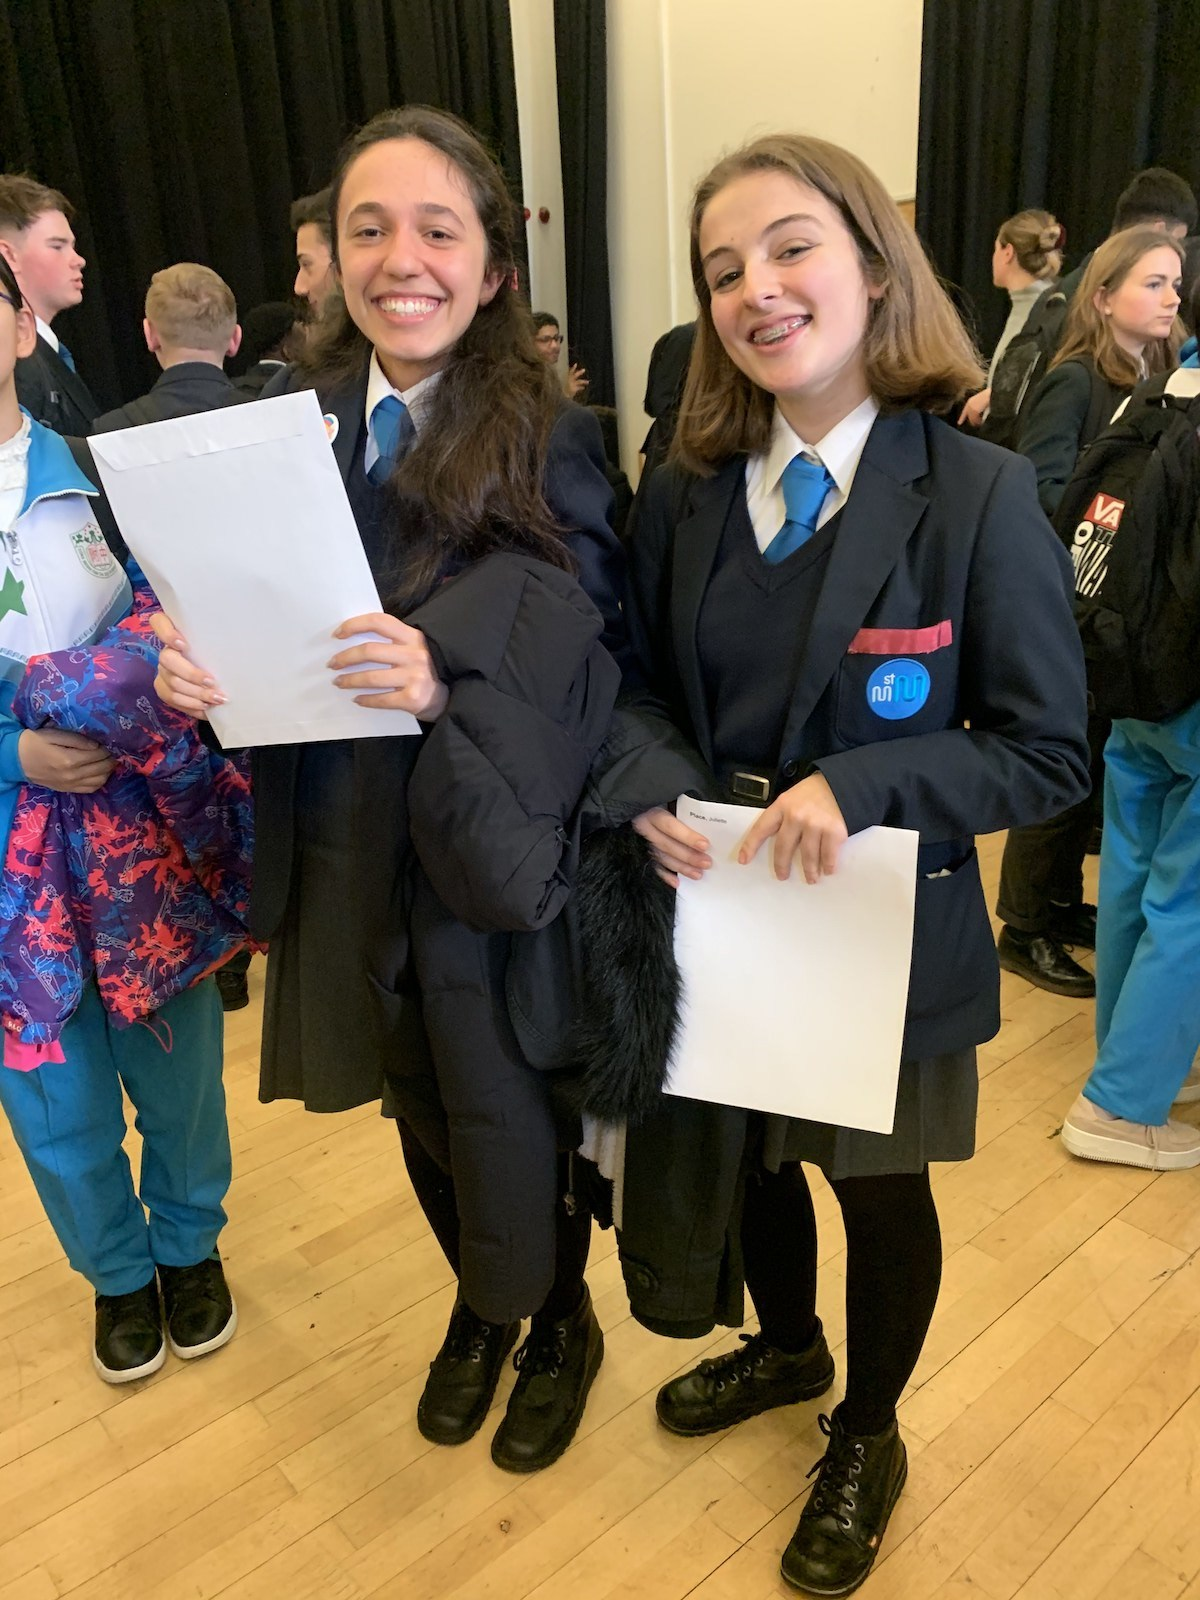 St mary magdalene academy islington year 11 mock results day 12